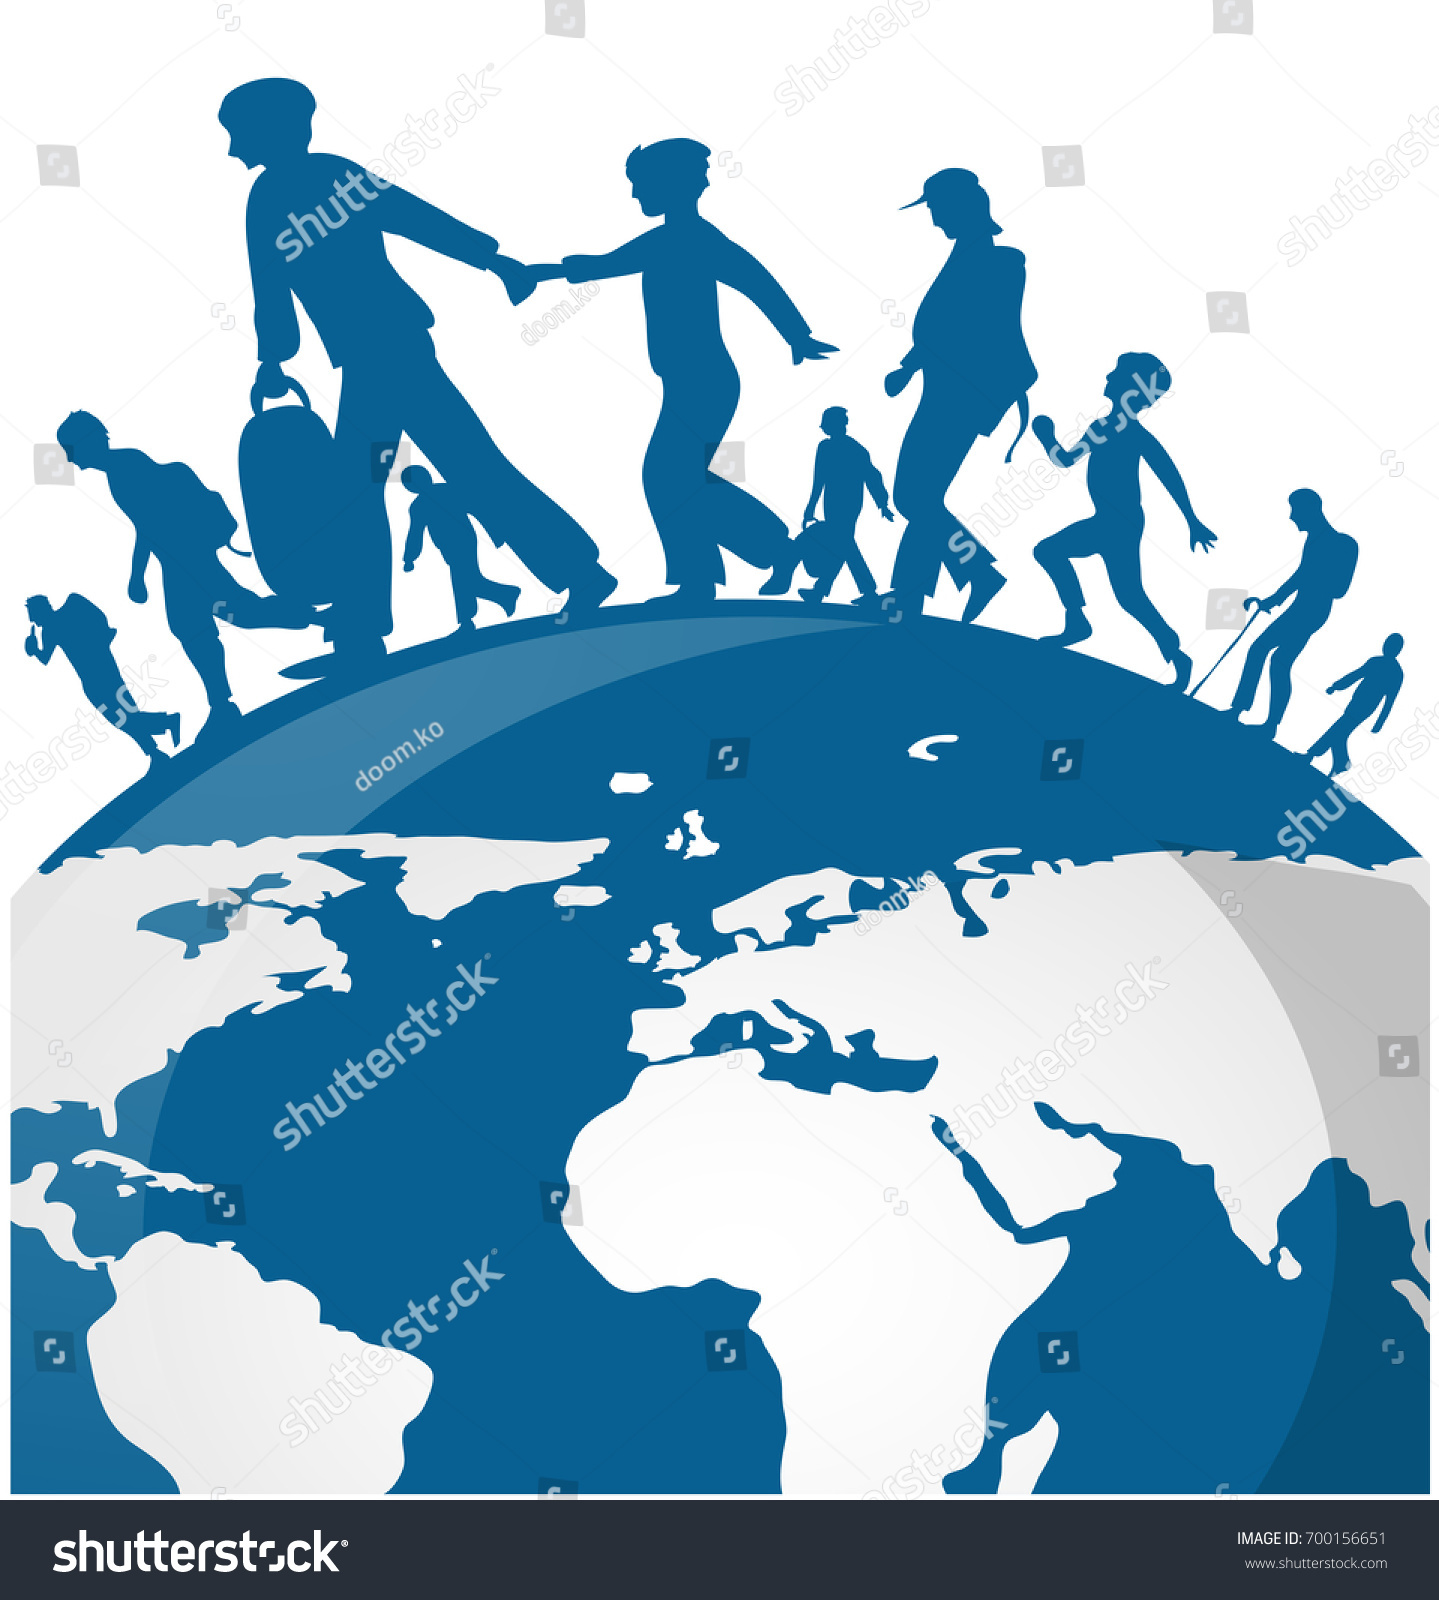 Immigration people on world map background vectores en stock immigration people on world map background gumiabroncs Image collections